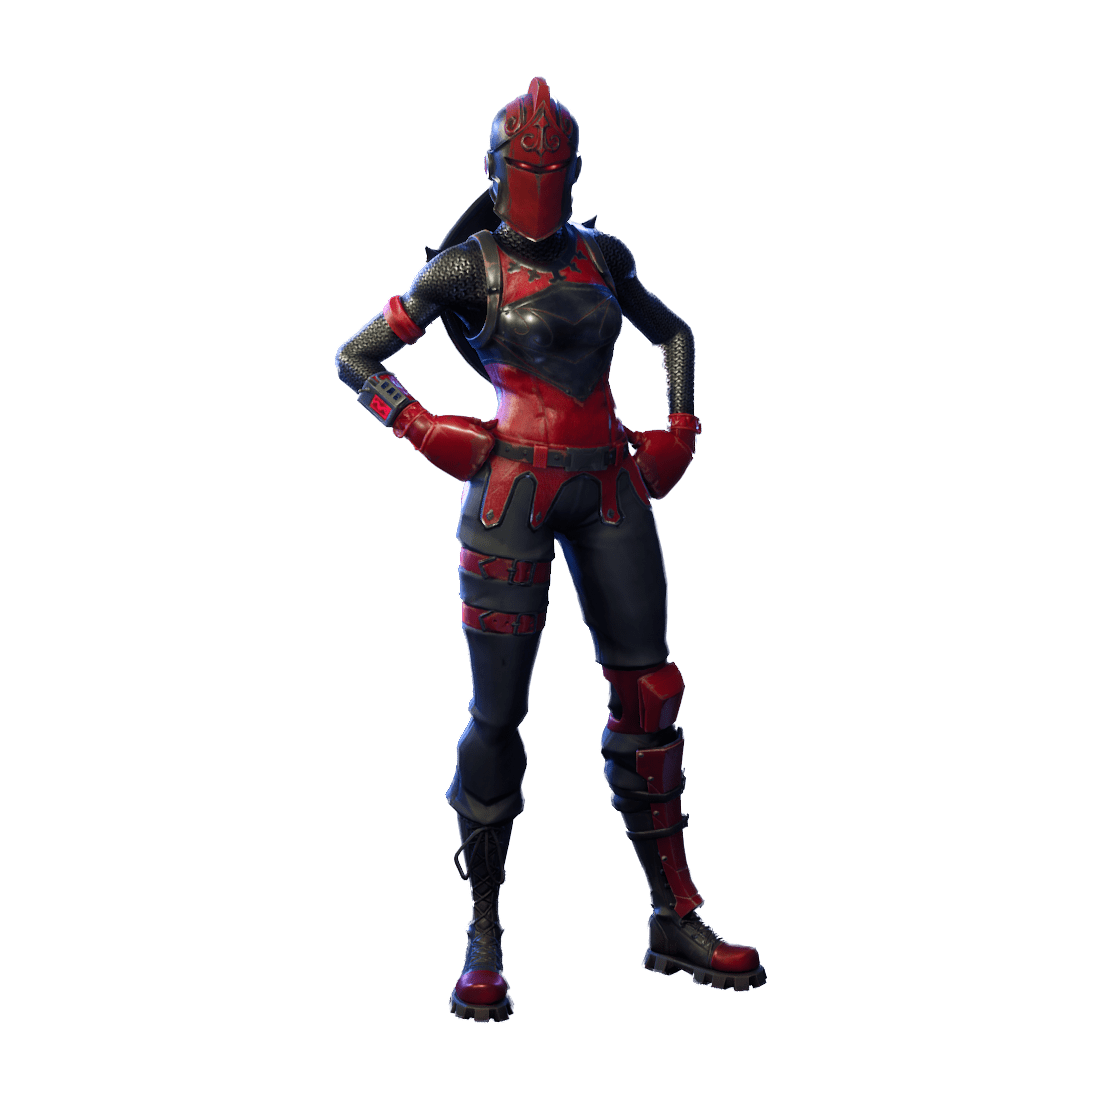 featured - red fortnite skin